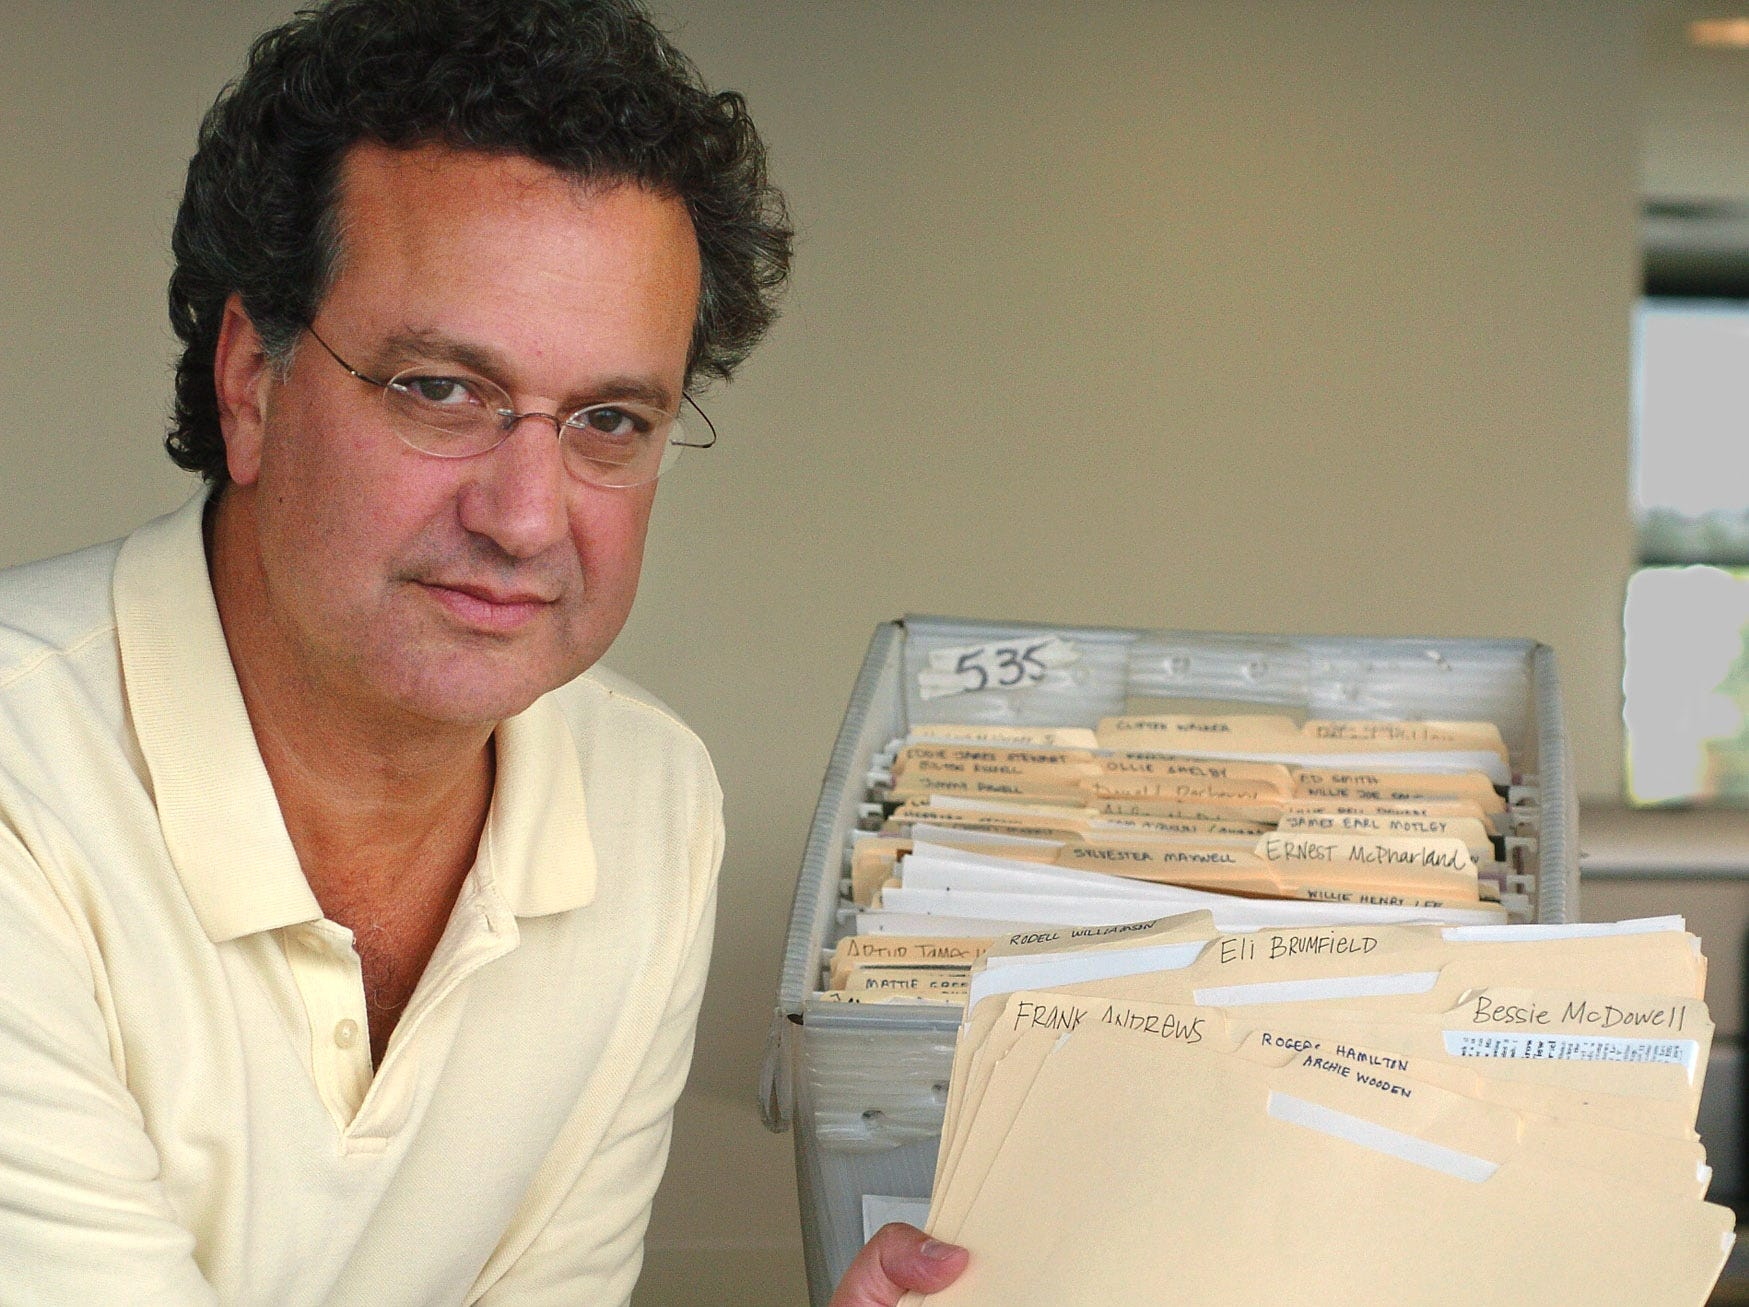 Aug. 21 -- Richard Cohen, president of the Southern Poverty Law Center, holds with some of their unsolved Alabama murder files as seen on Tuesday, Aug. 21, 2007, at their office  in Montgomery, Ala. In the background are unsolved murder files from other states.(Montgomery Advertiser, Lloyd Gallman)